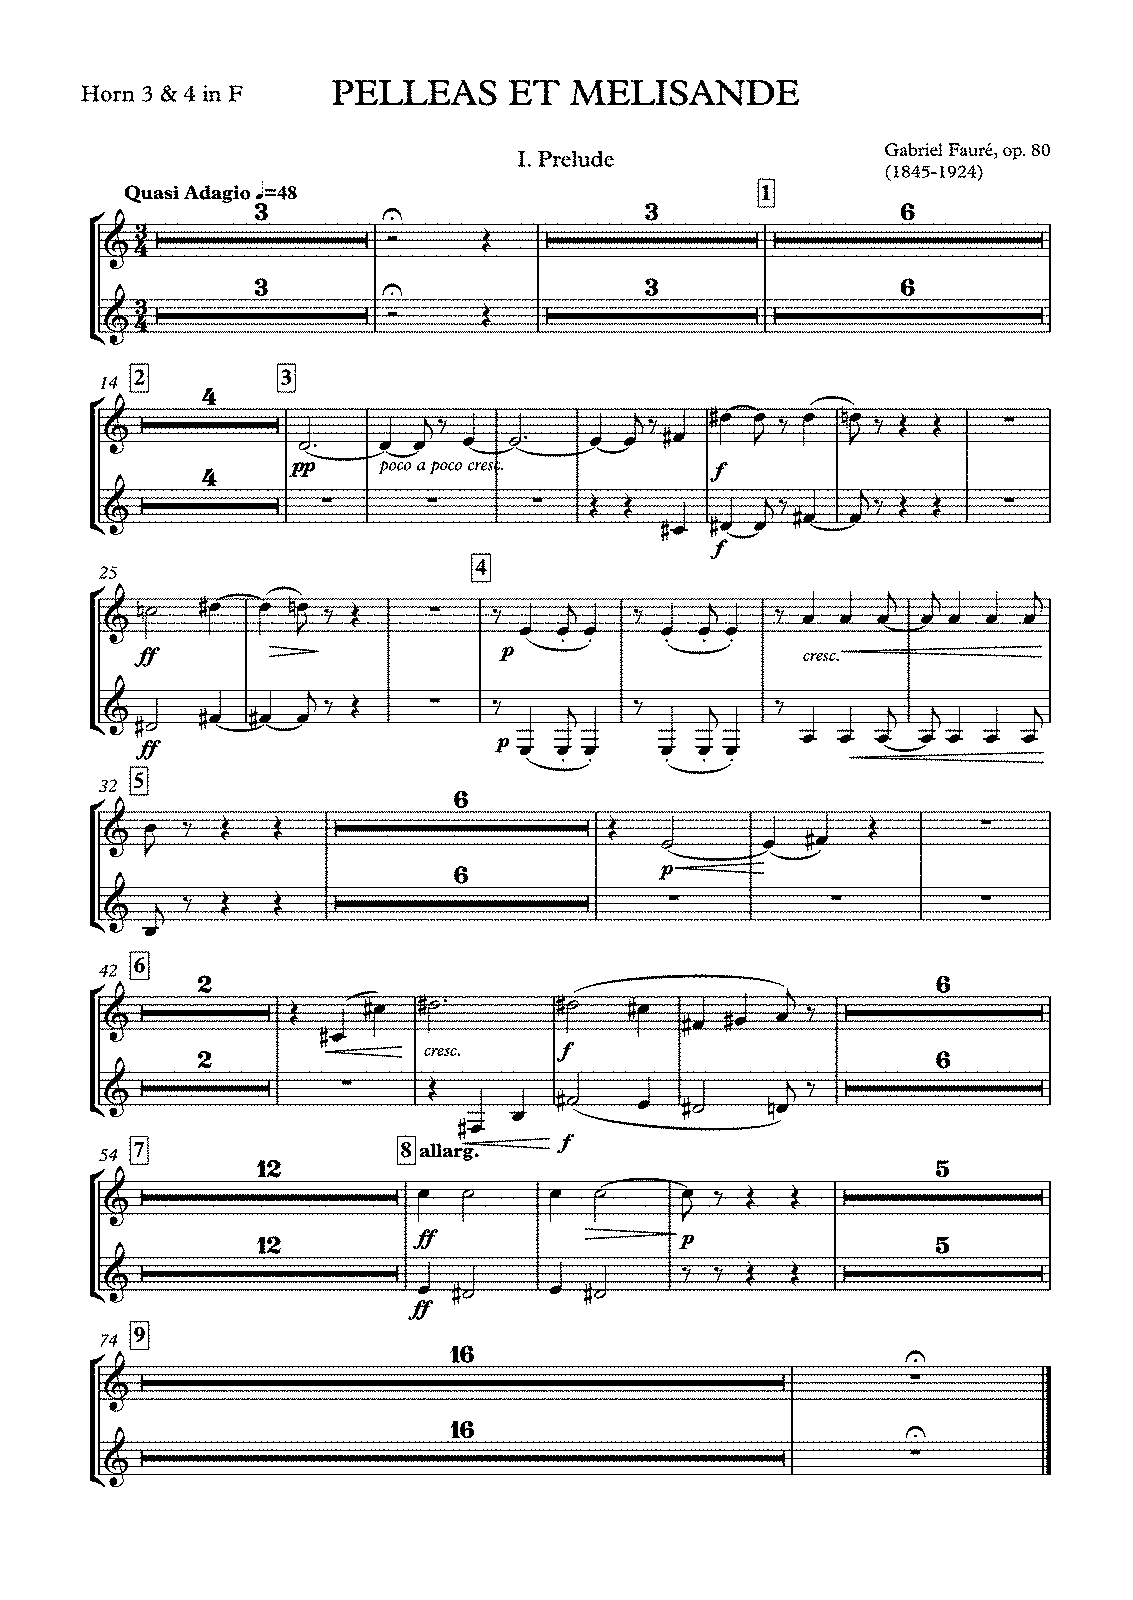 PMLP52649-Pelleas and Melisande Prelude - Horn 3 & 4 in F.pdf